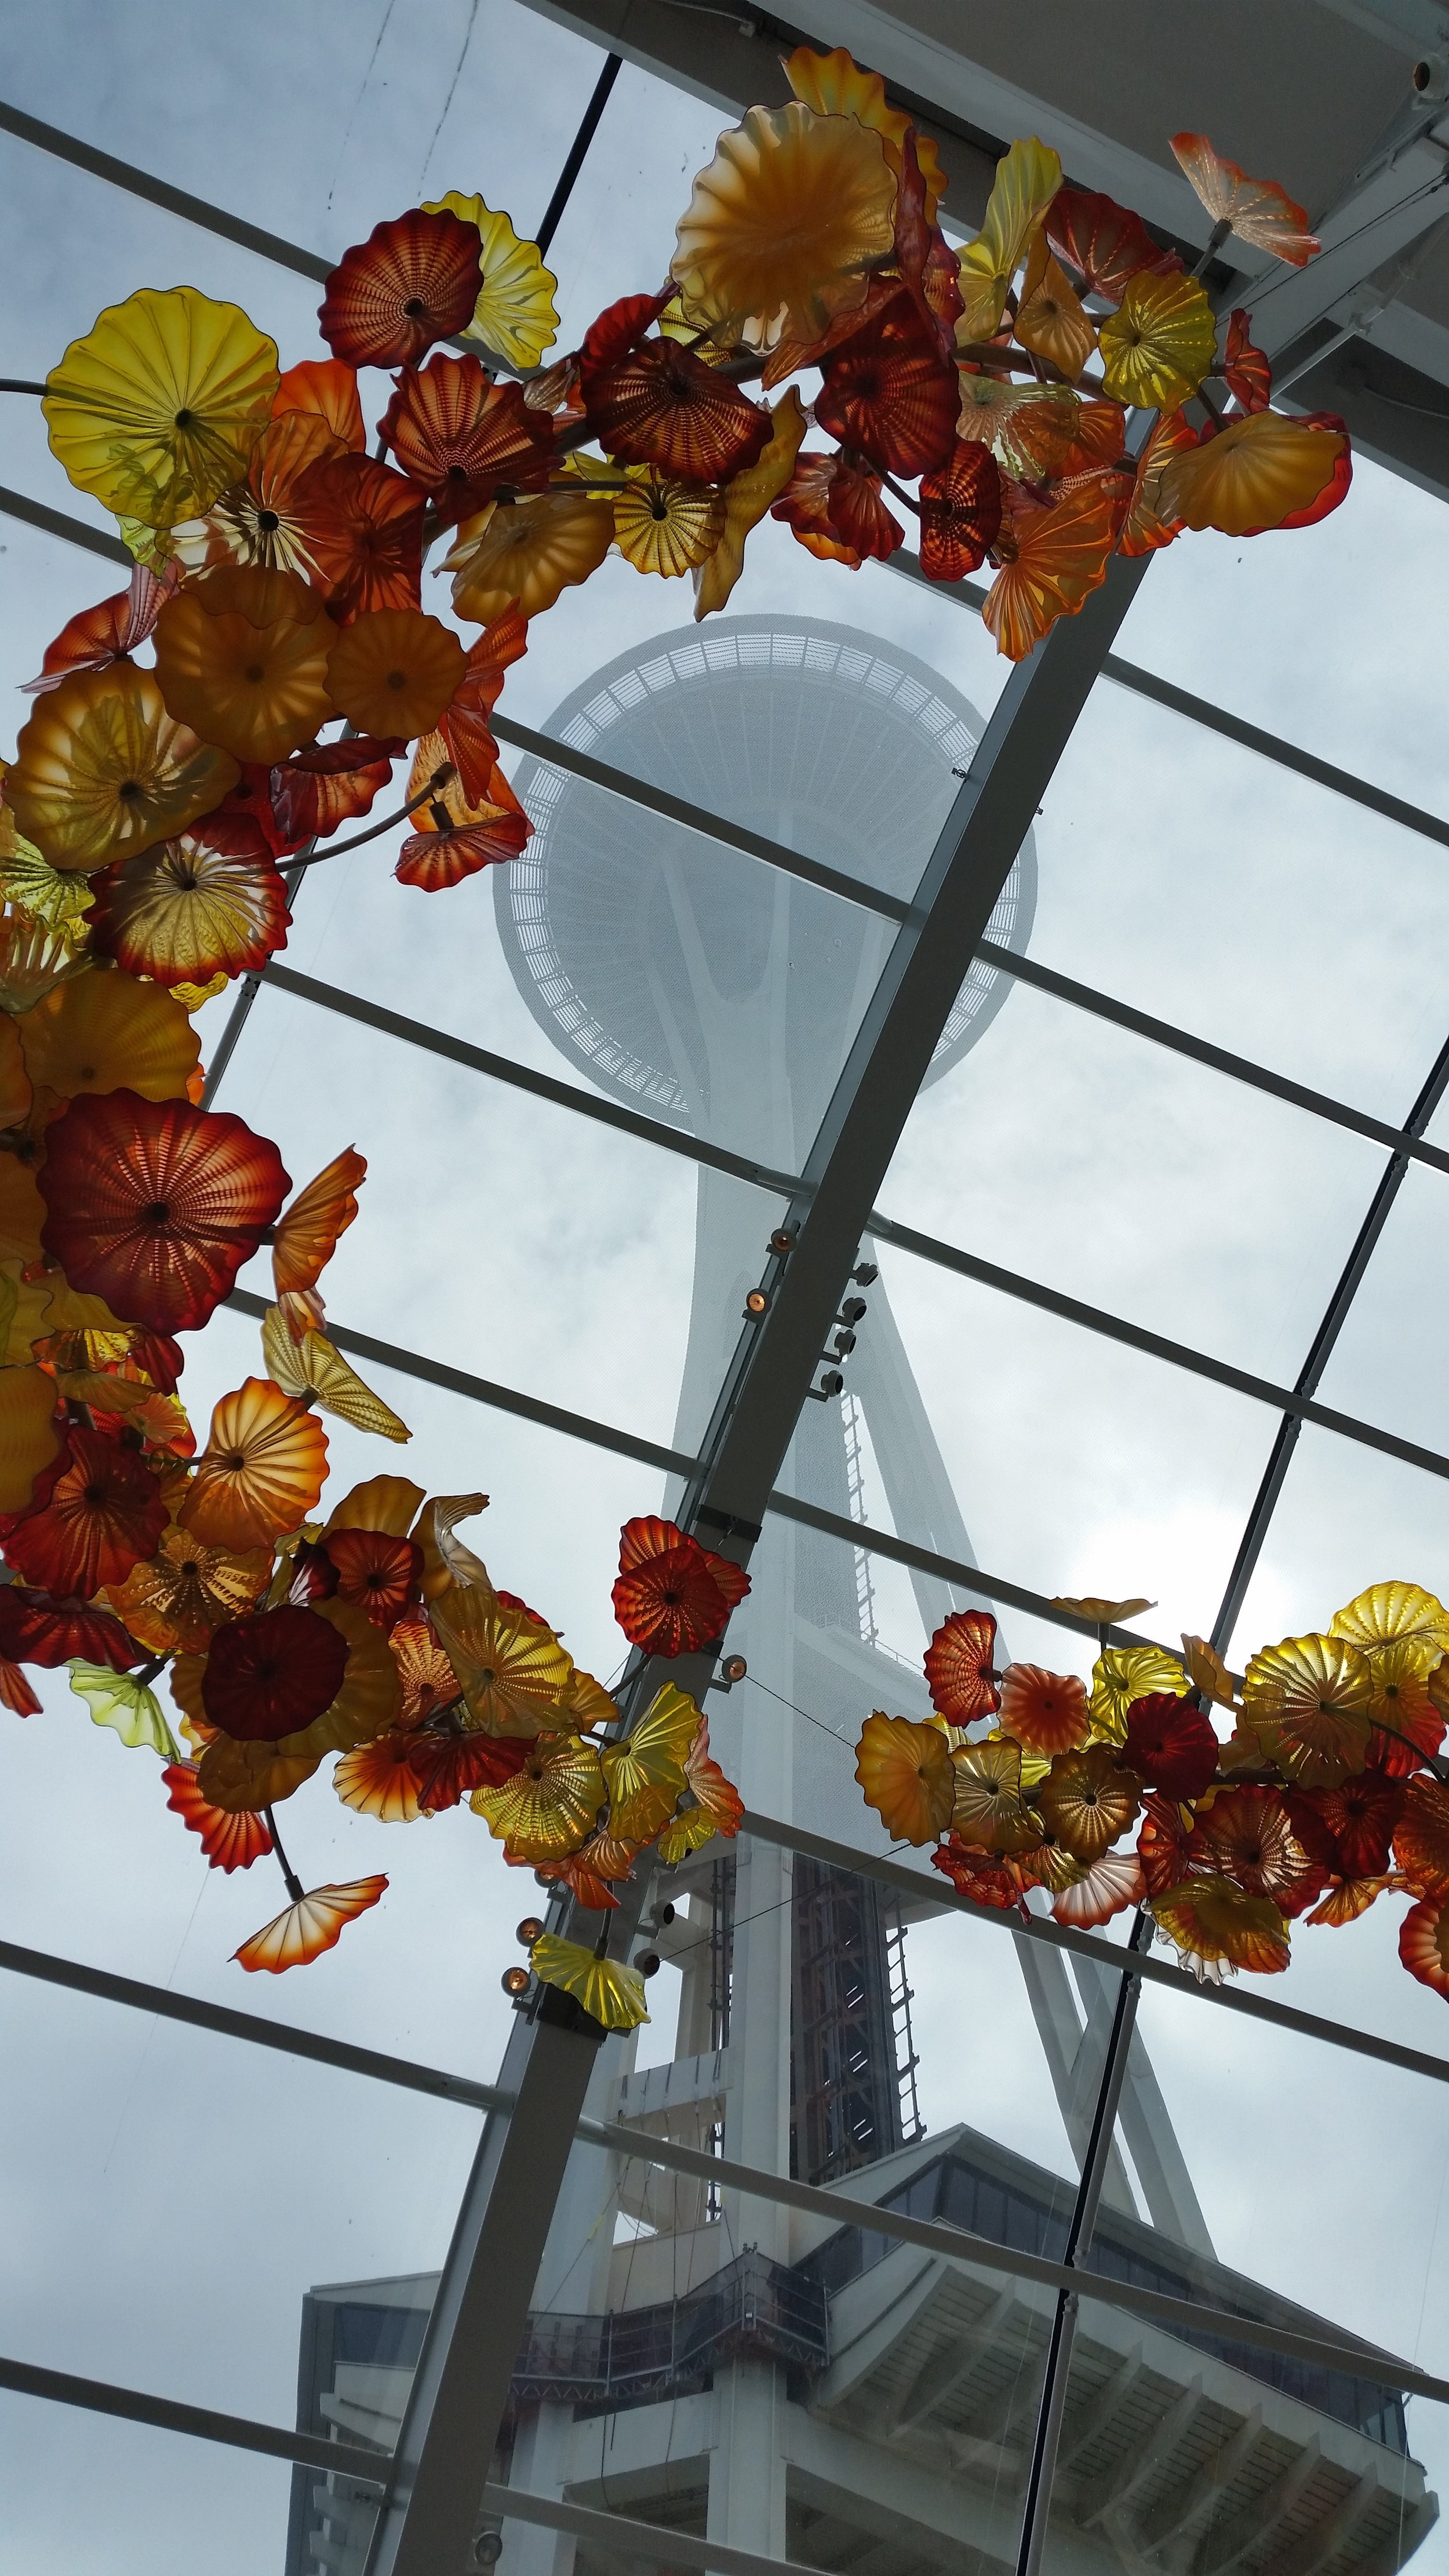 Space Needle from Chihuly Garden and Glass Museum